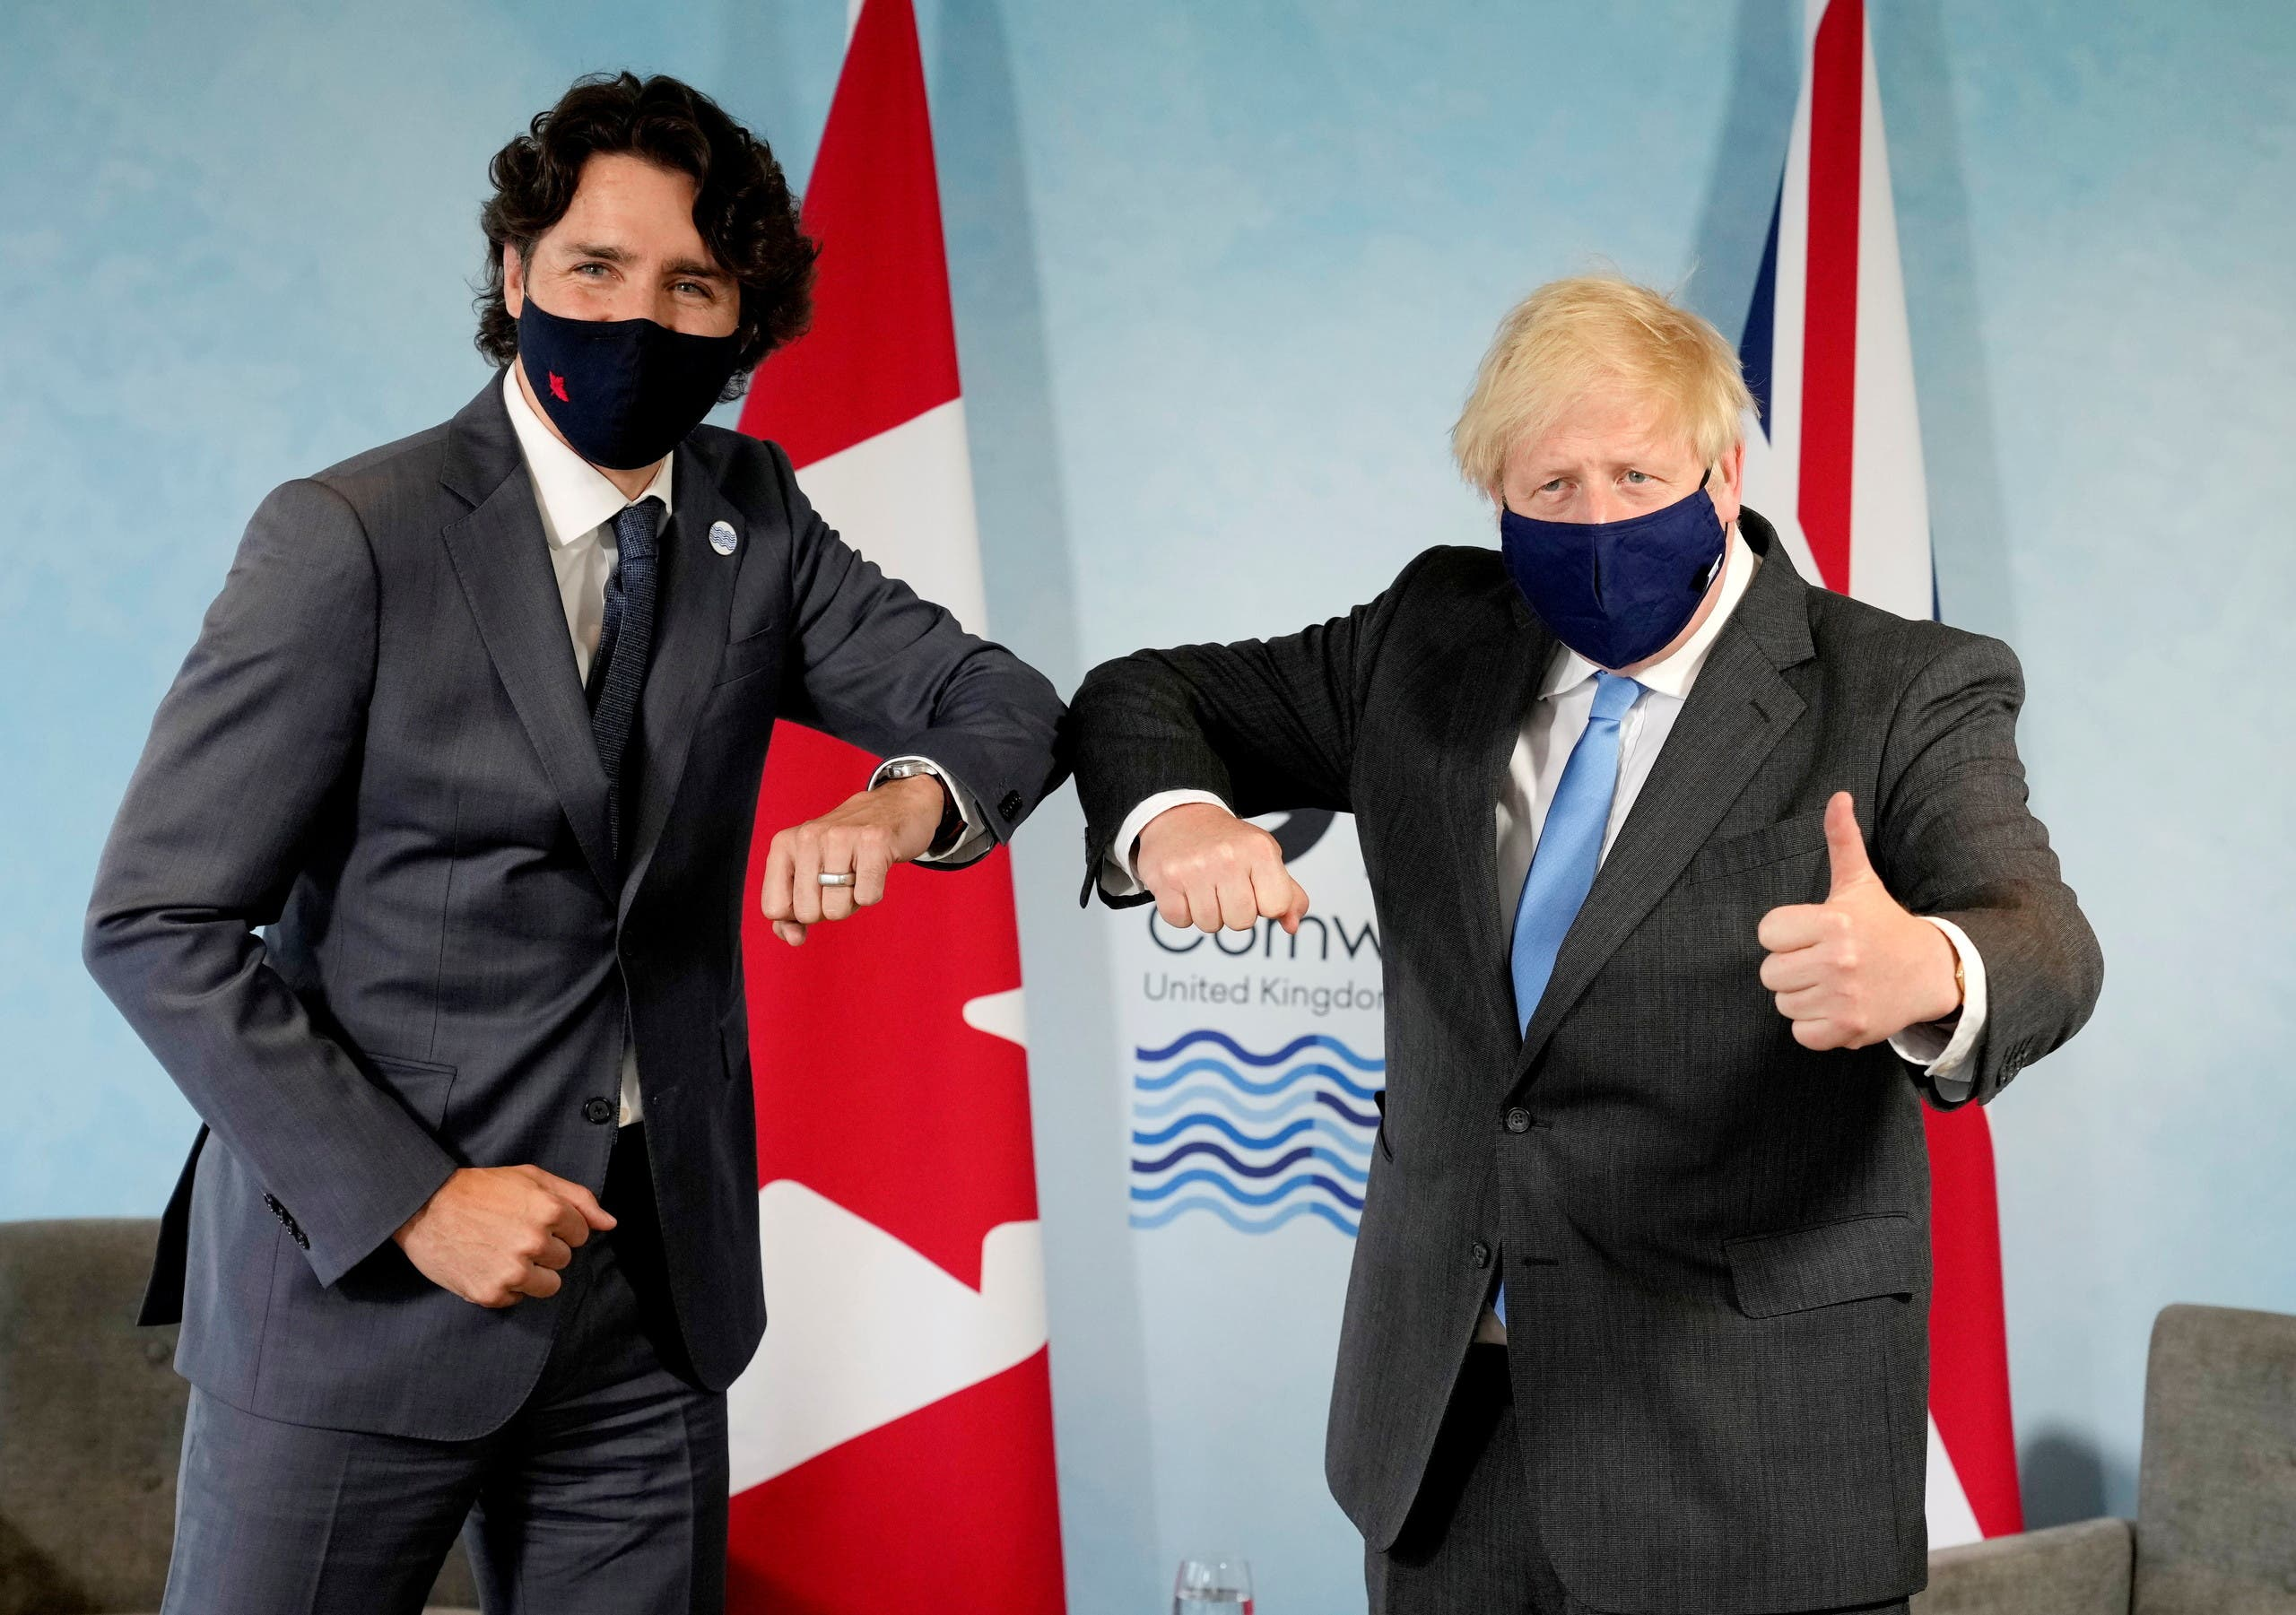 Britain's Prime Minister Boris Johnson and Canada's Prime Minister Justin Trudeau elbow bump prior to a bilateral meeting during the G7 summit in Carbis Bay, Cornwall, Britain, June 11, 2021. (Reuters)